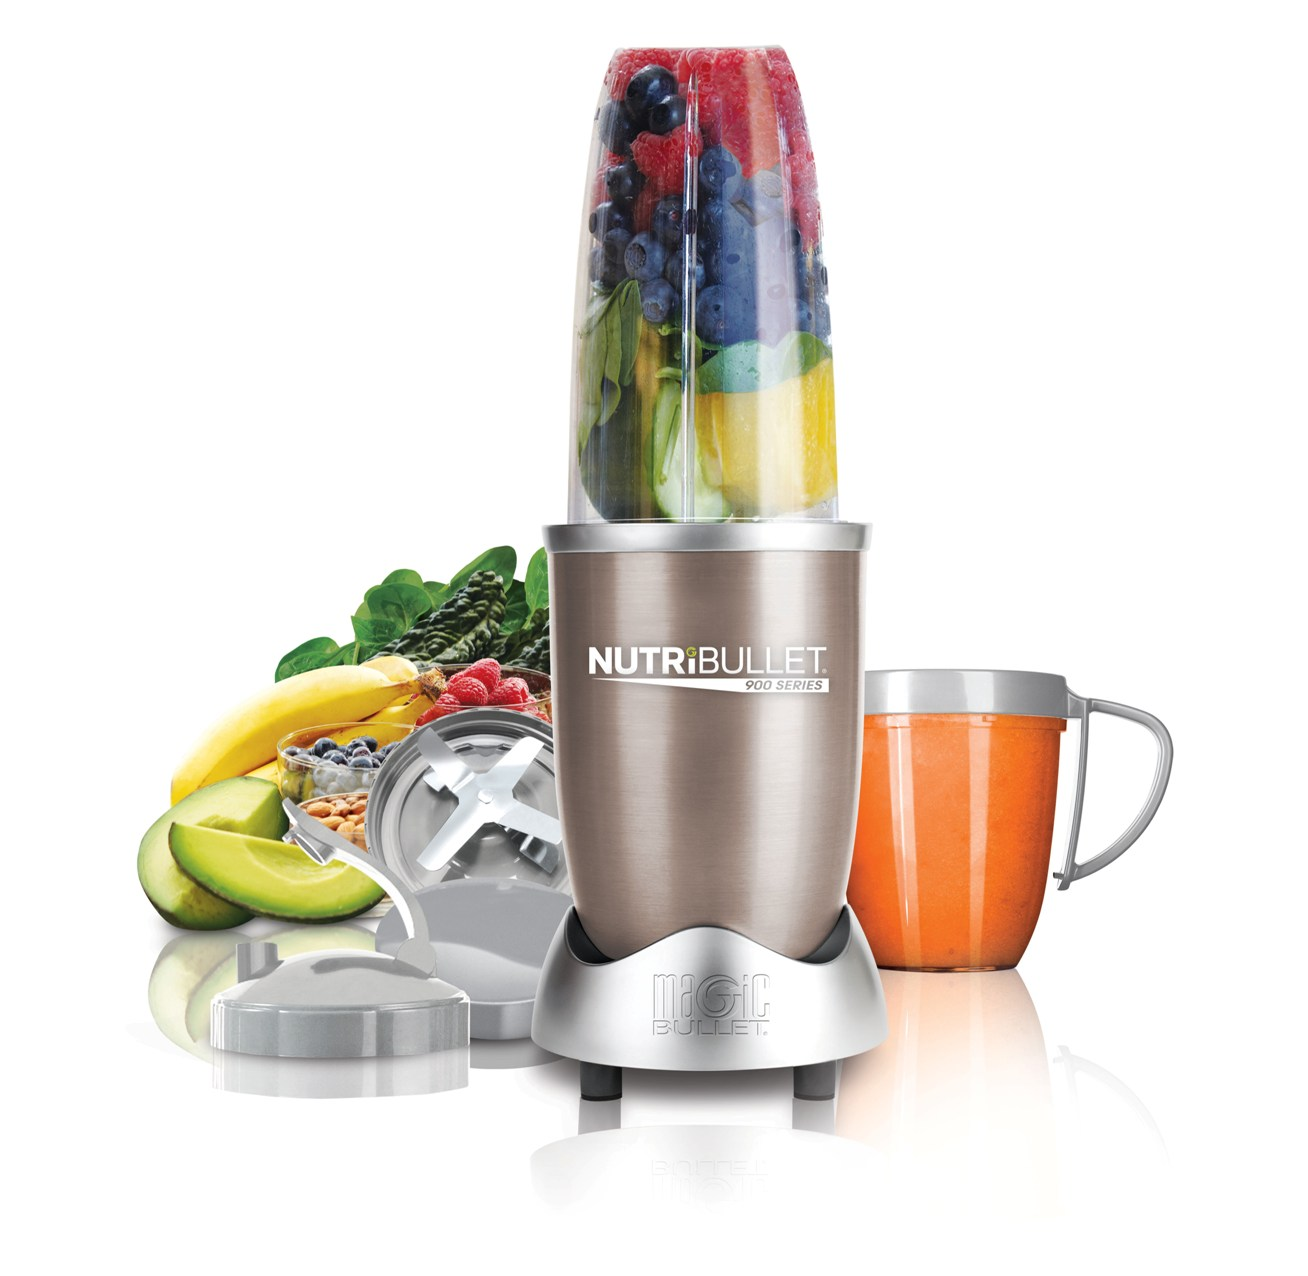 Unlike everyday juicers and blenders, the NutriBullet completely breaks down ingredients into their most nutritious, most absorptive state! Perfect for health-conscious people with an on-the-go lifestyle, and the perfect companion for Sinchies Reusable Food Pouches. Blend & Store! Scroll down to see the various models.